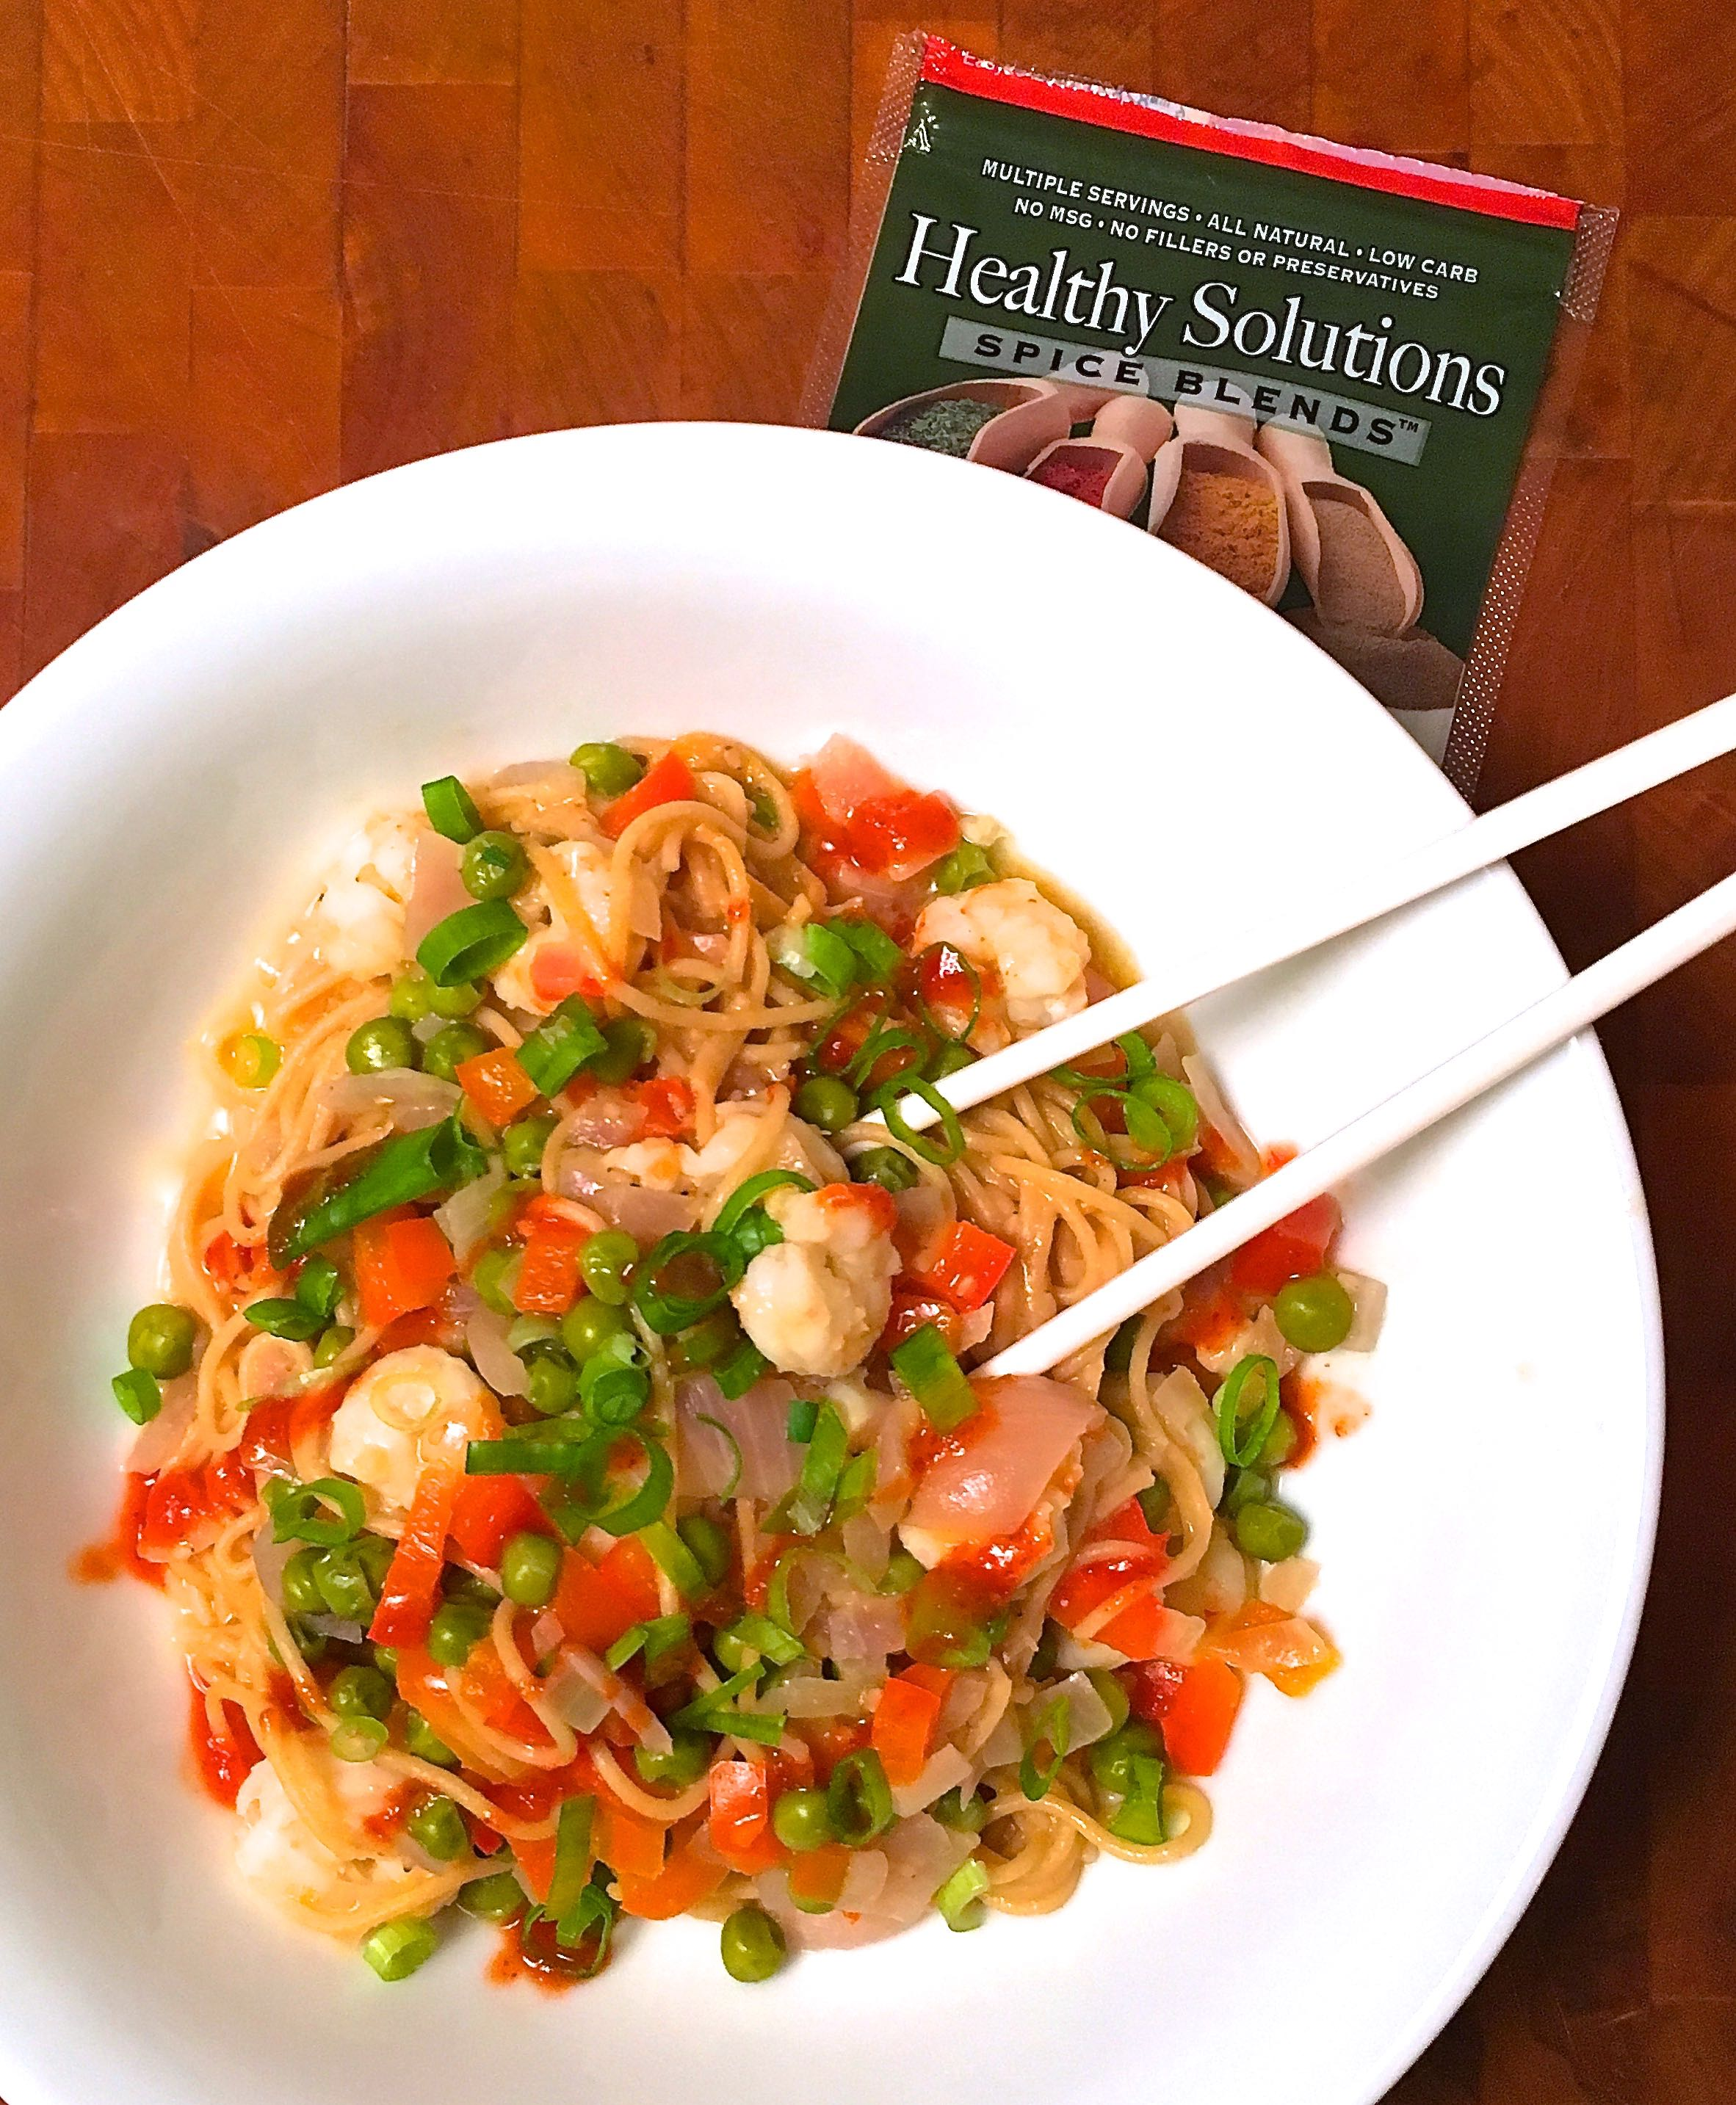 healthy solutions sesame ginger pasta.jpg